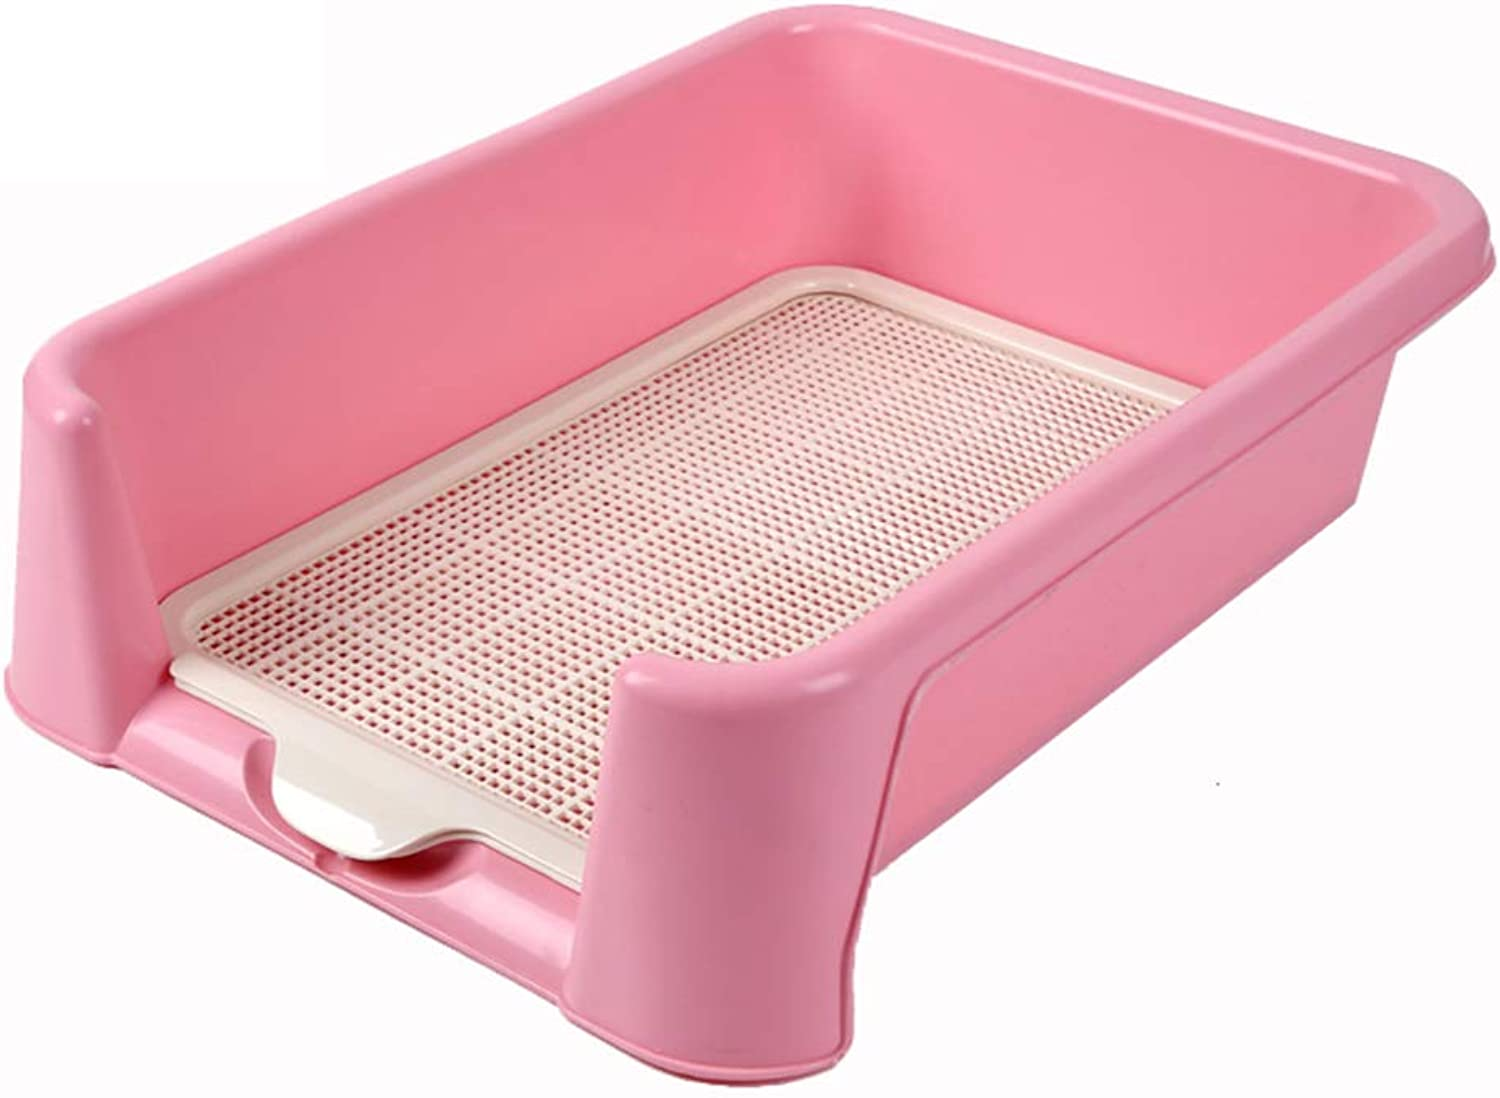 North cool Fence Pet Cat Dog Toilet, Pet Potty Urinal Large and Medium Dog Toilet (color   Pink, Size   42  42cm)